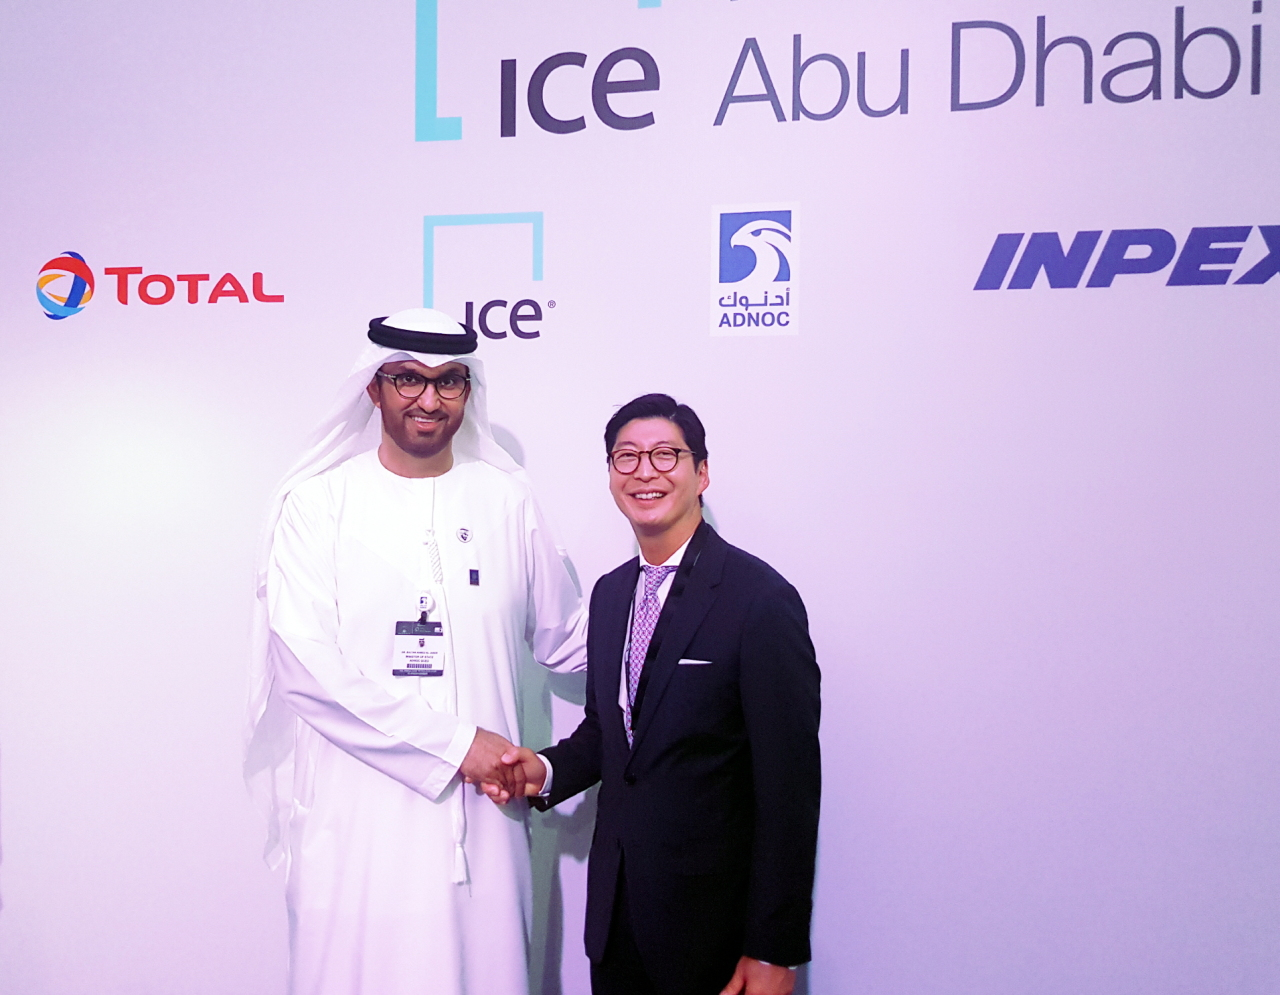 ADNOC CEO Sultan Ahmed Al Jaber (left) and GS Caltex CEO Hur Sae-hong pose for a photo after a signing ceremony for the launch of the ICE Futures Abu Dhabi on Monday. (GS Caltex)